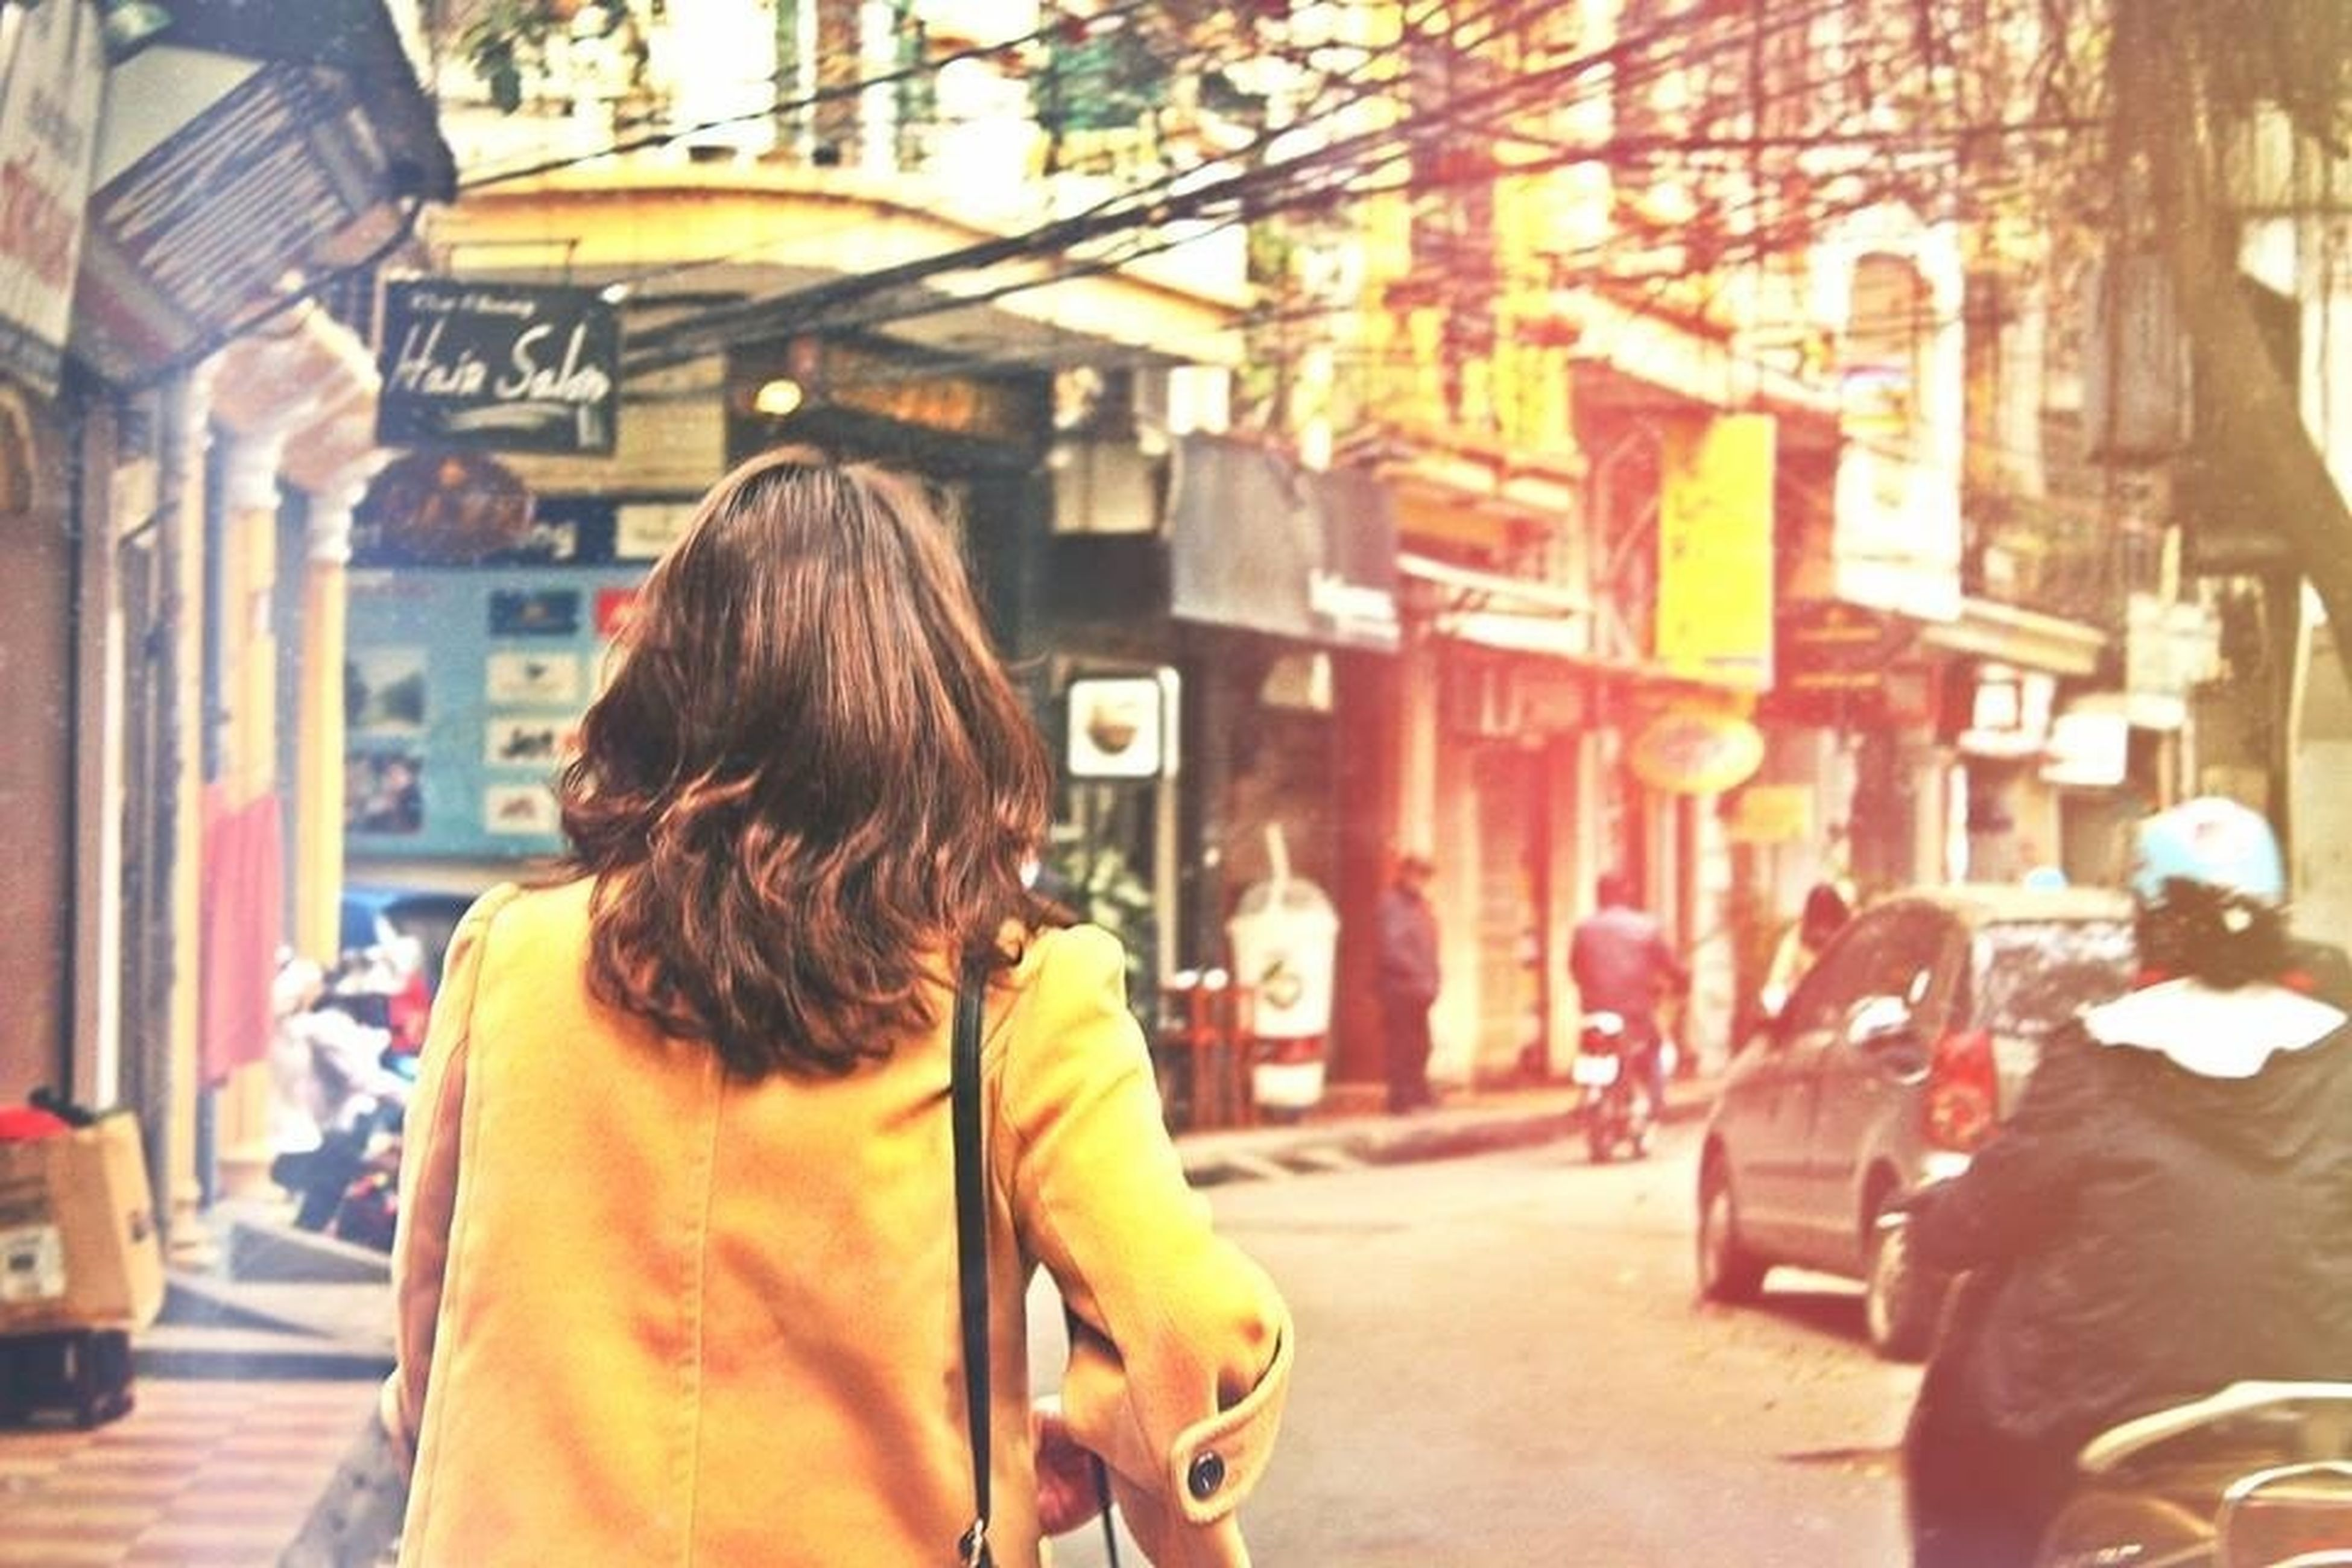 lifestyles, building exterior, architecture, person, built structure, rear view, leisure activity, city, street, incidental people, casual clothing, city life, focus on foreground, long hair, standing, walking, illuminated, young women